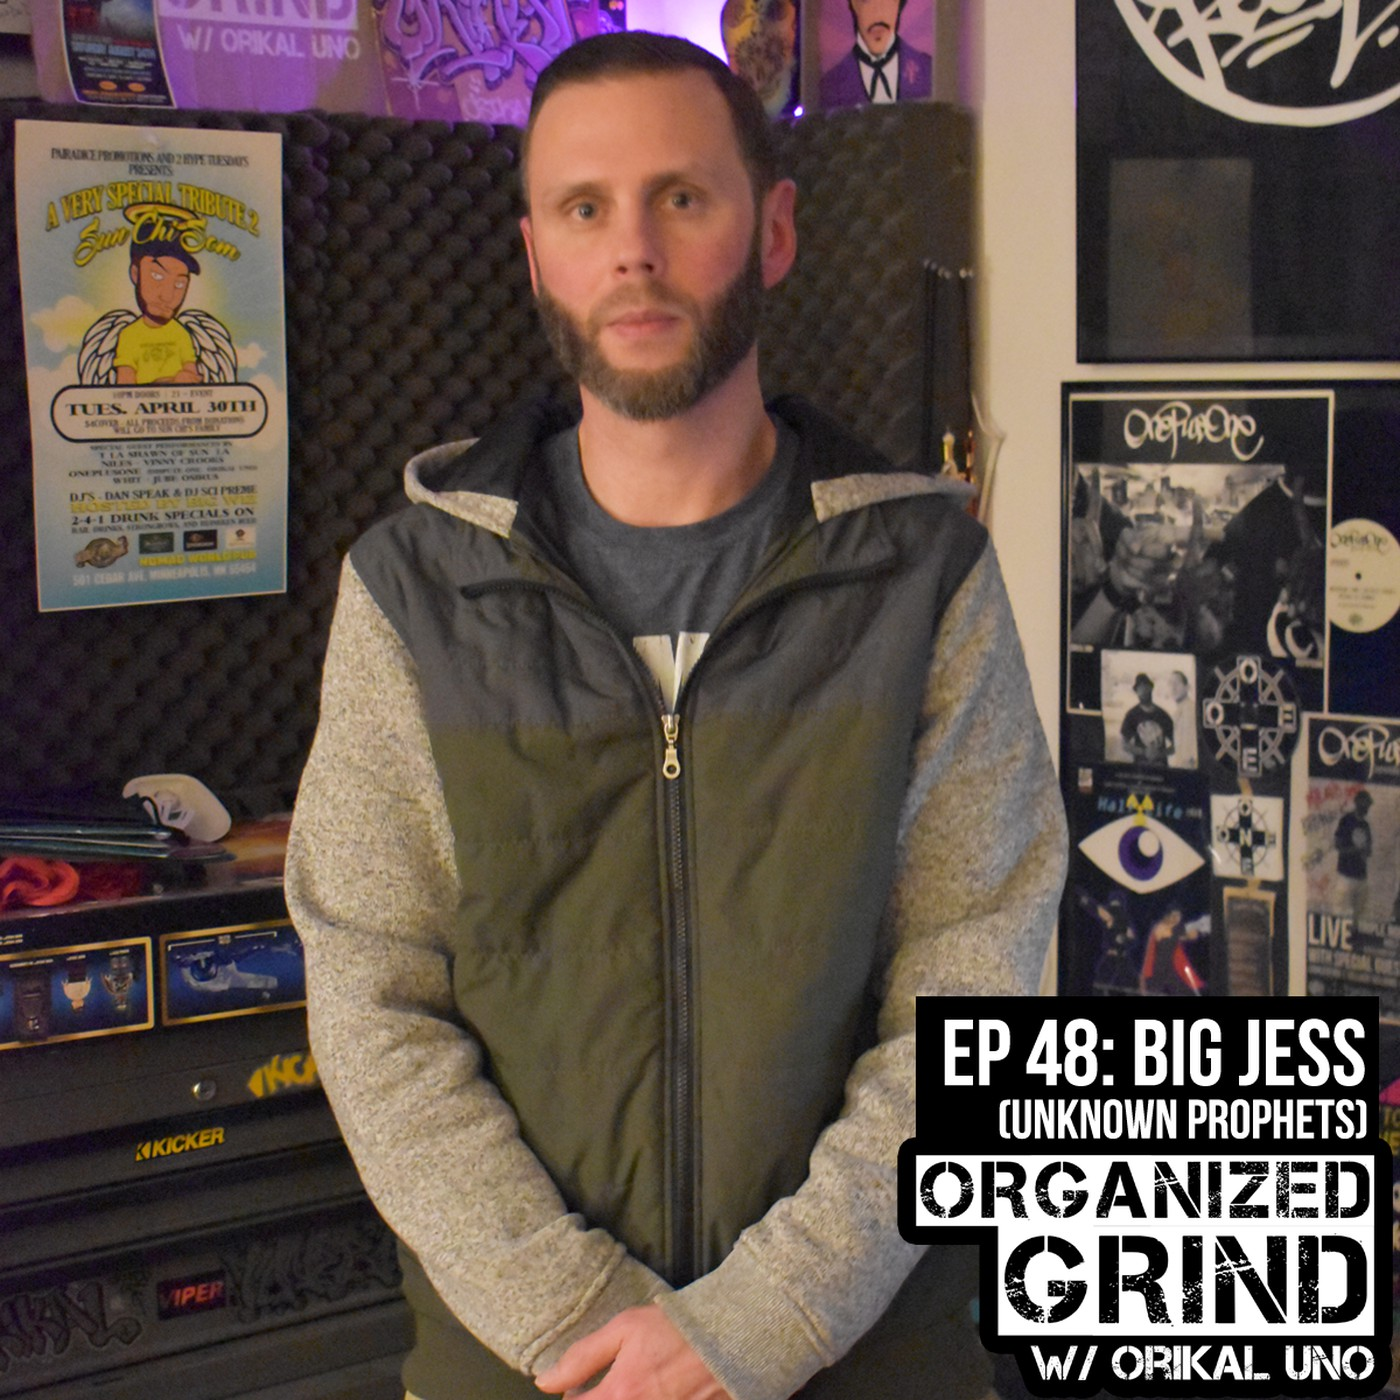 Organized Grind: The Podcast